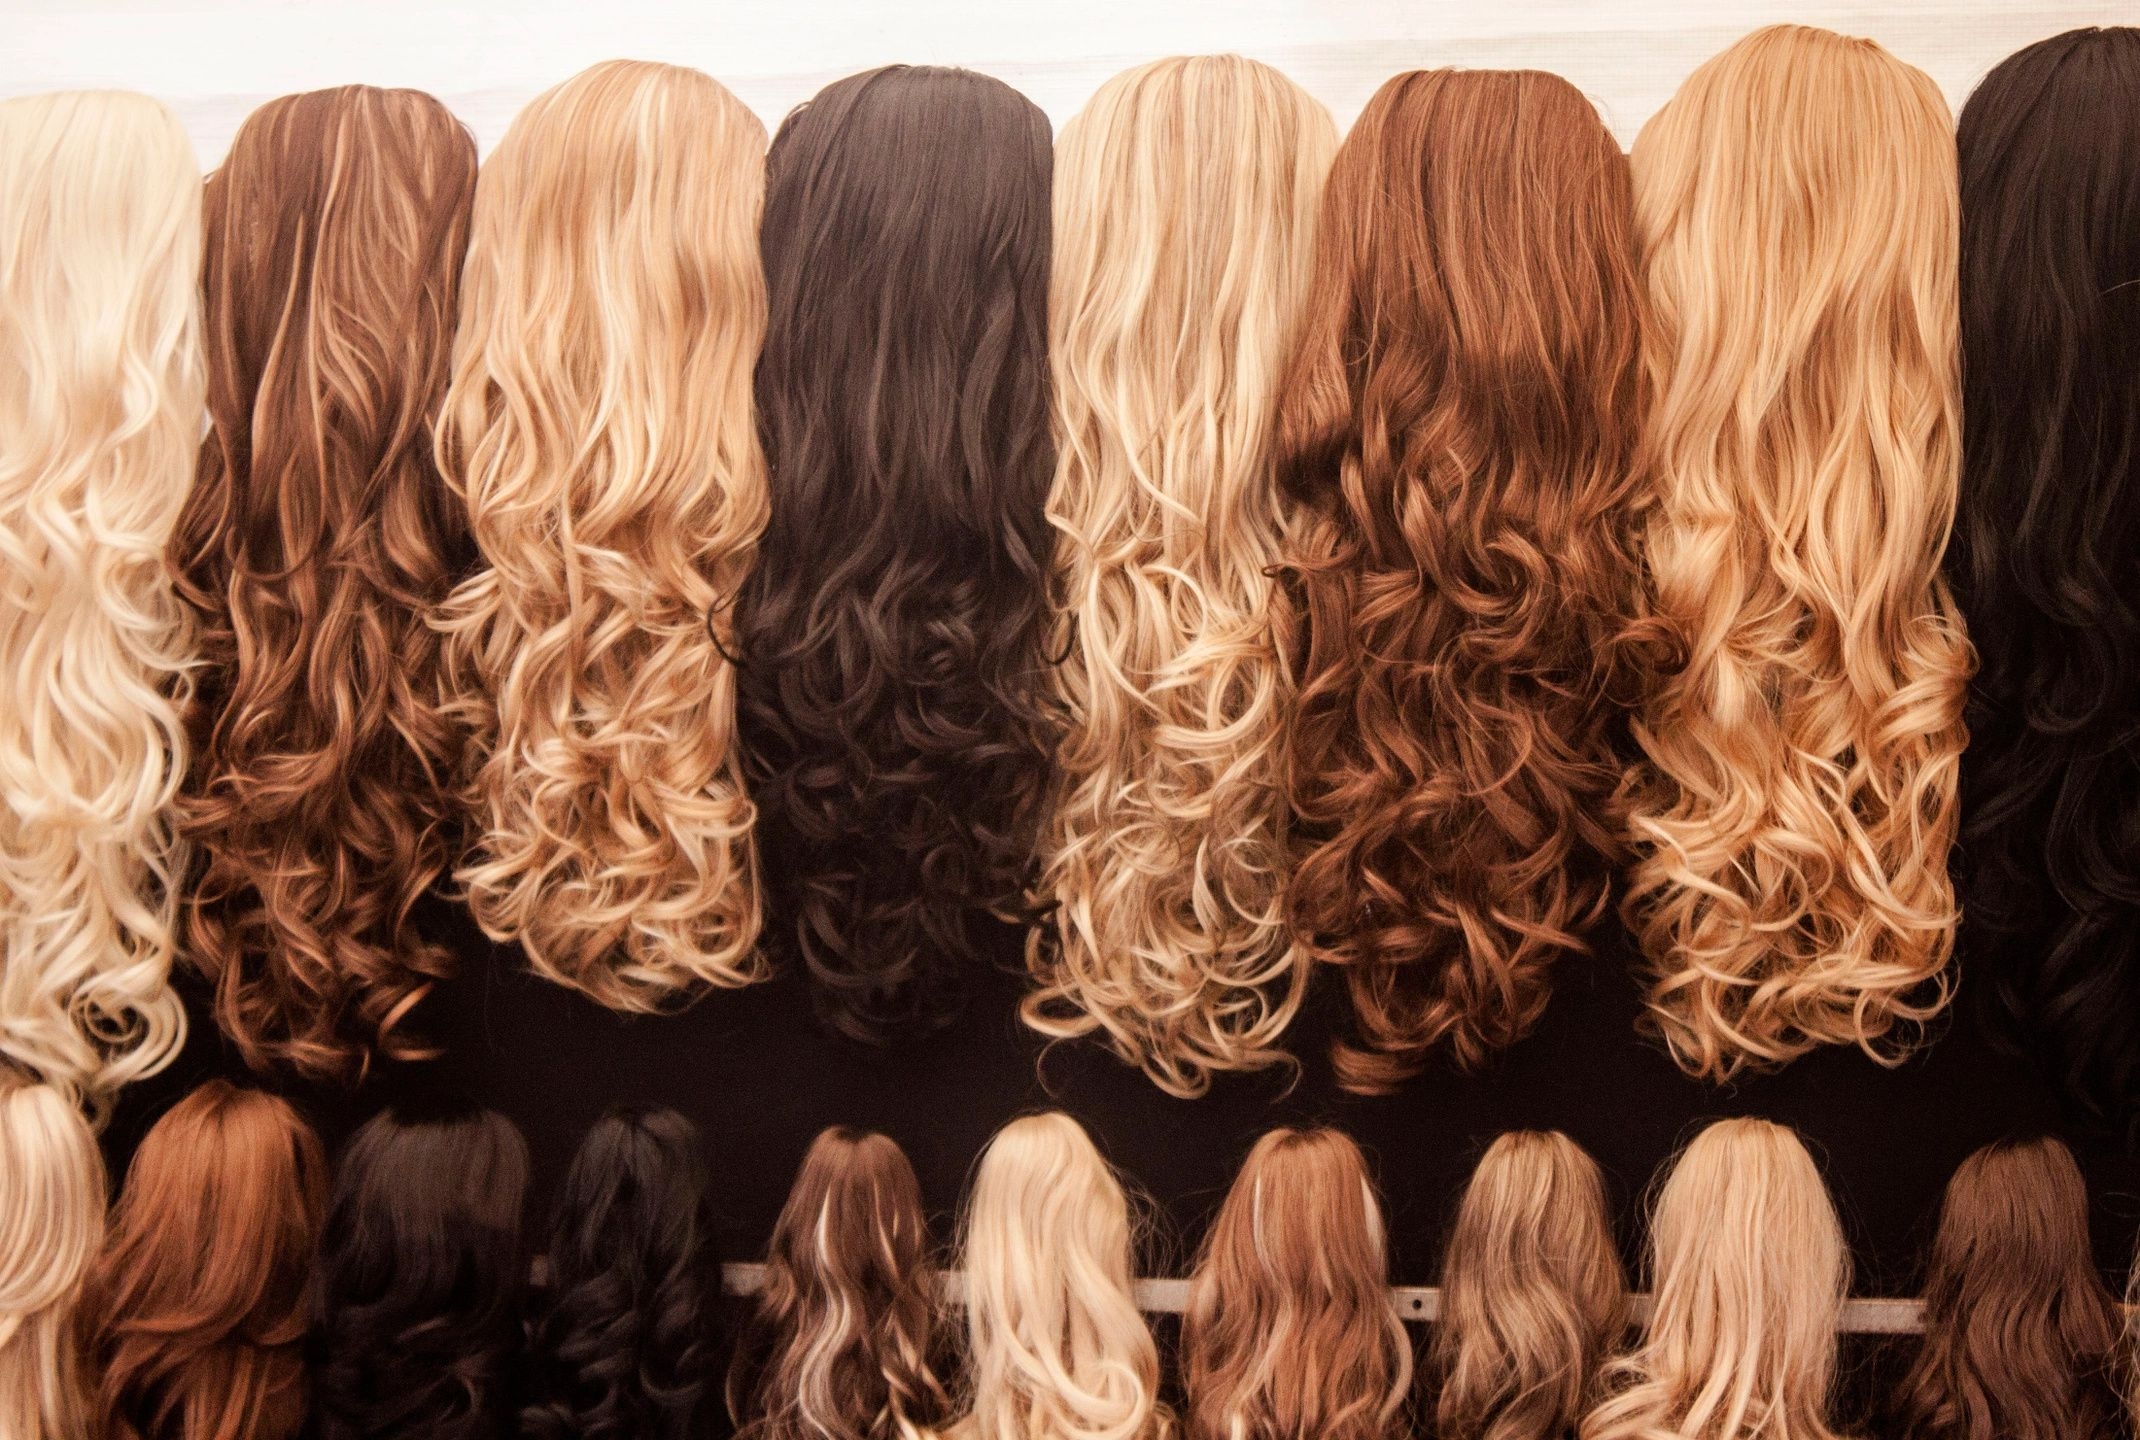 Interested in Wearing Wigs? Here Are 6 Tips to Get You Started